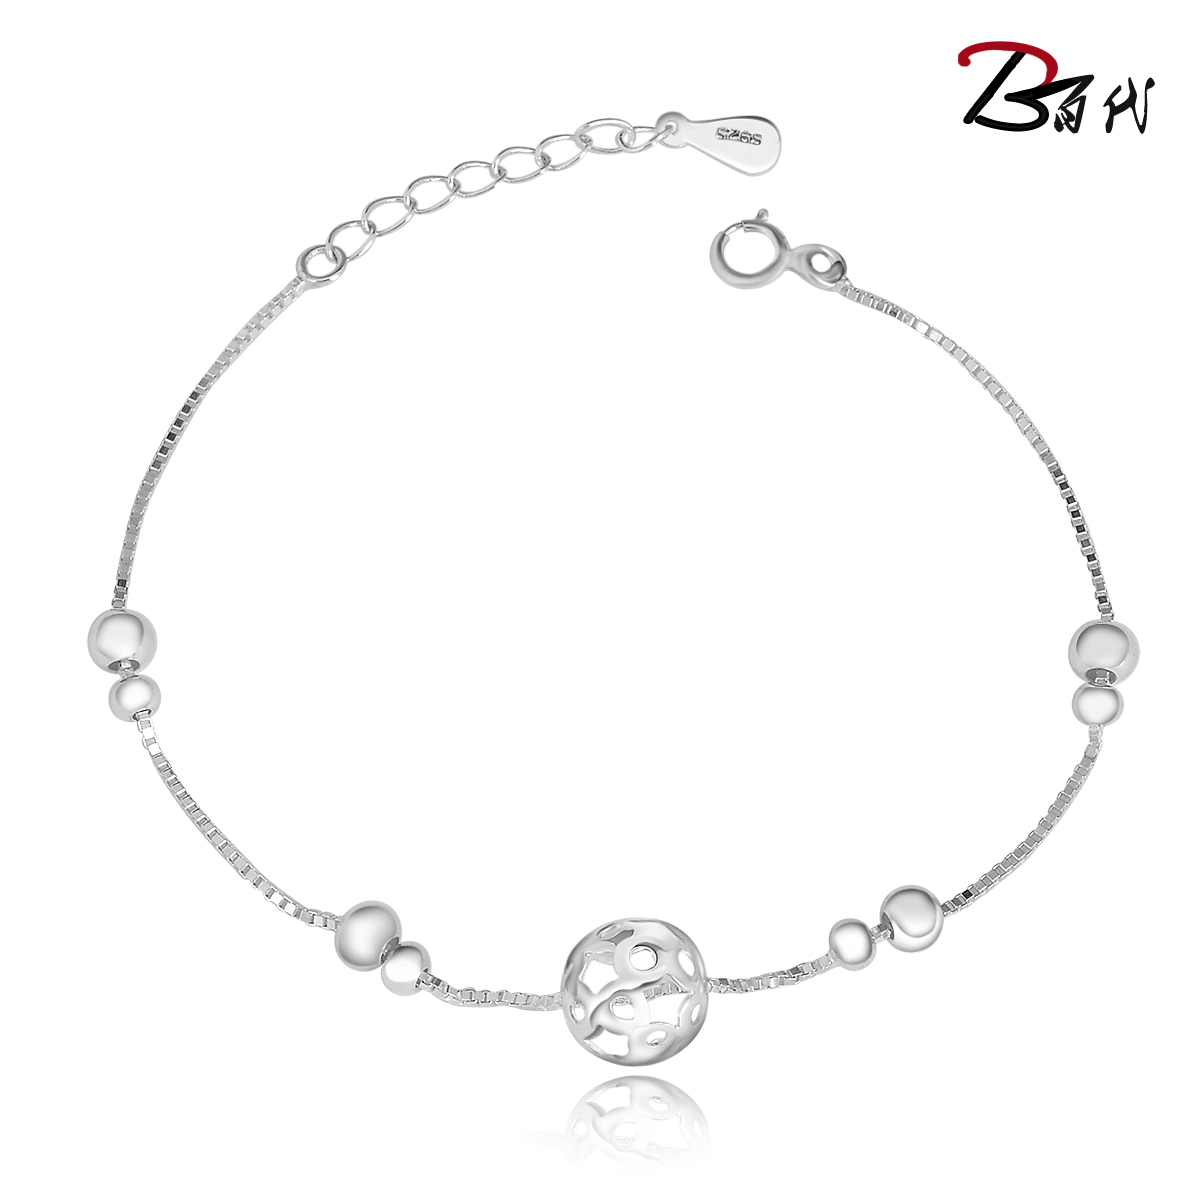 Emi beautiful milinglong star bracelet jewelry korean version of the s925 silver jewelry silver jewelry lovers to send a friend a gift free shipping